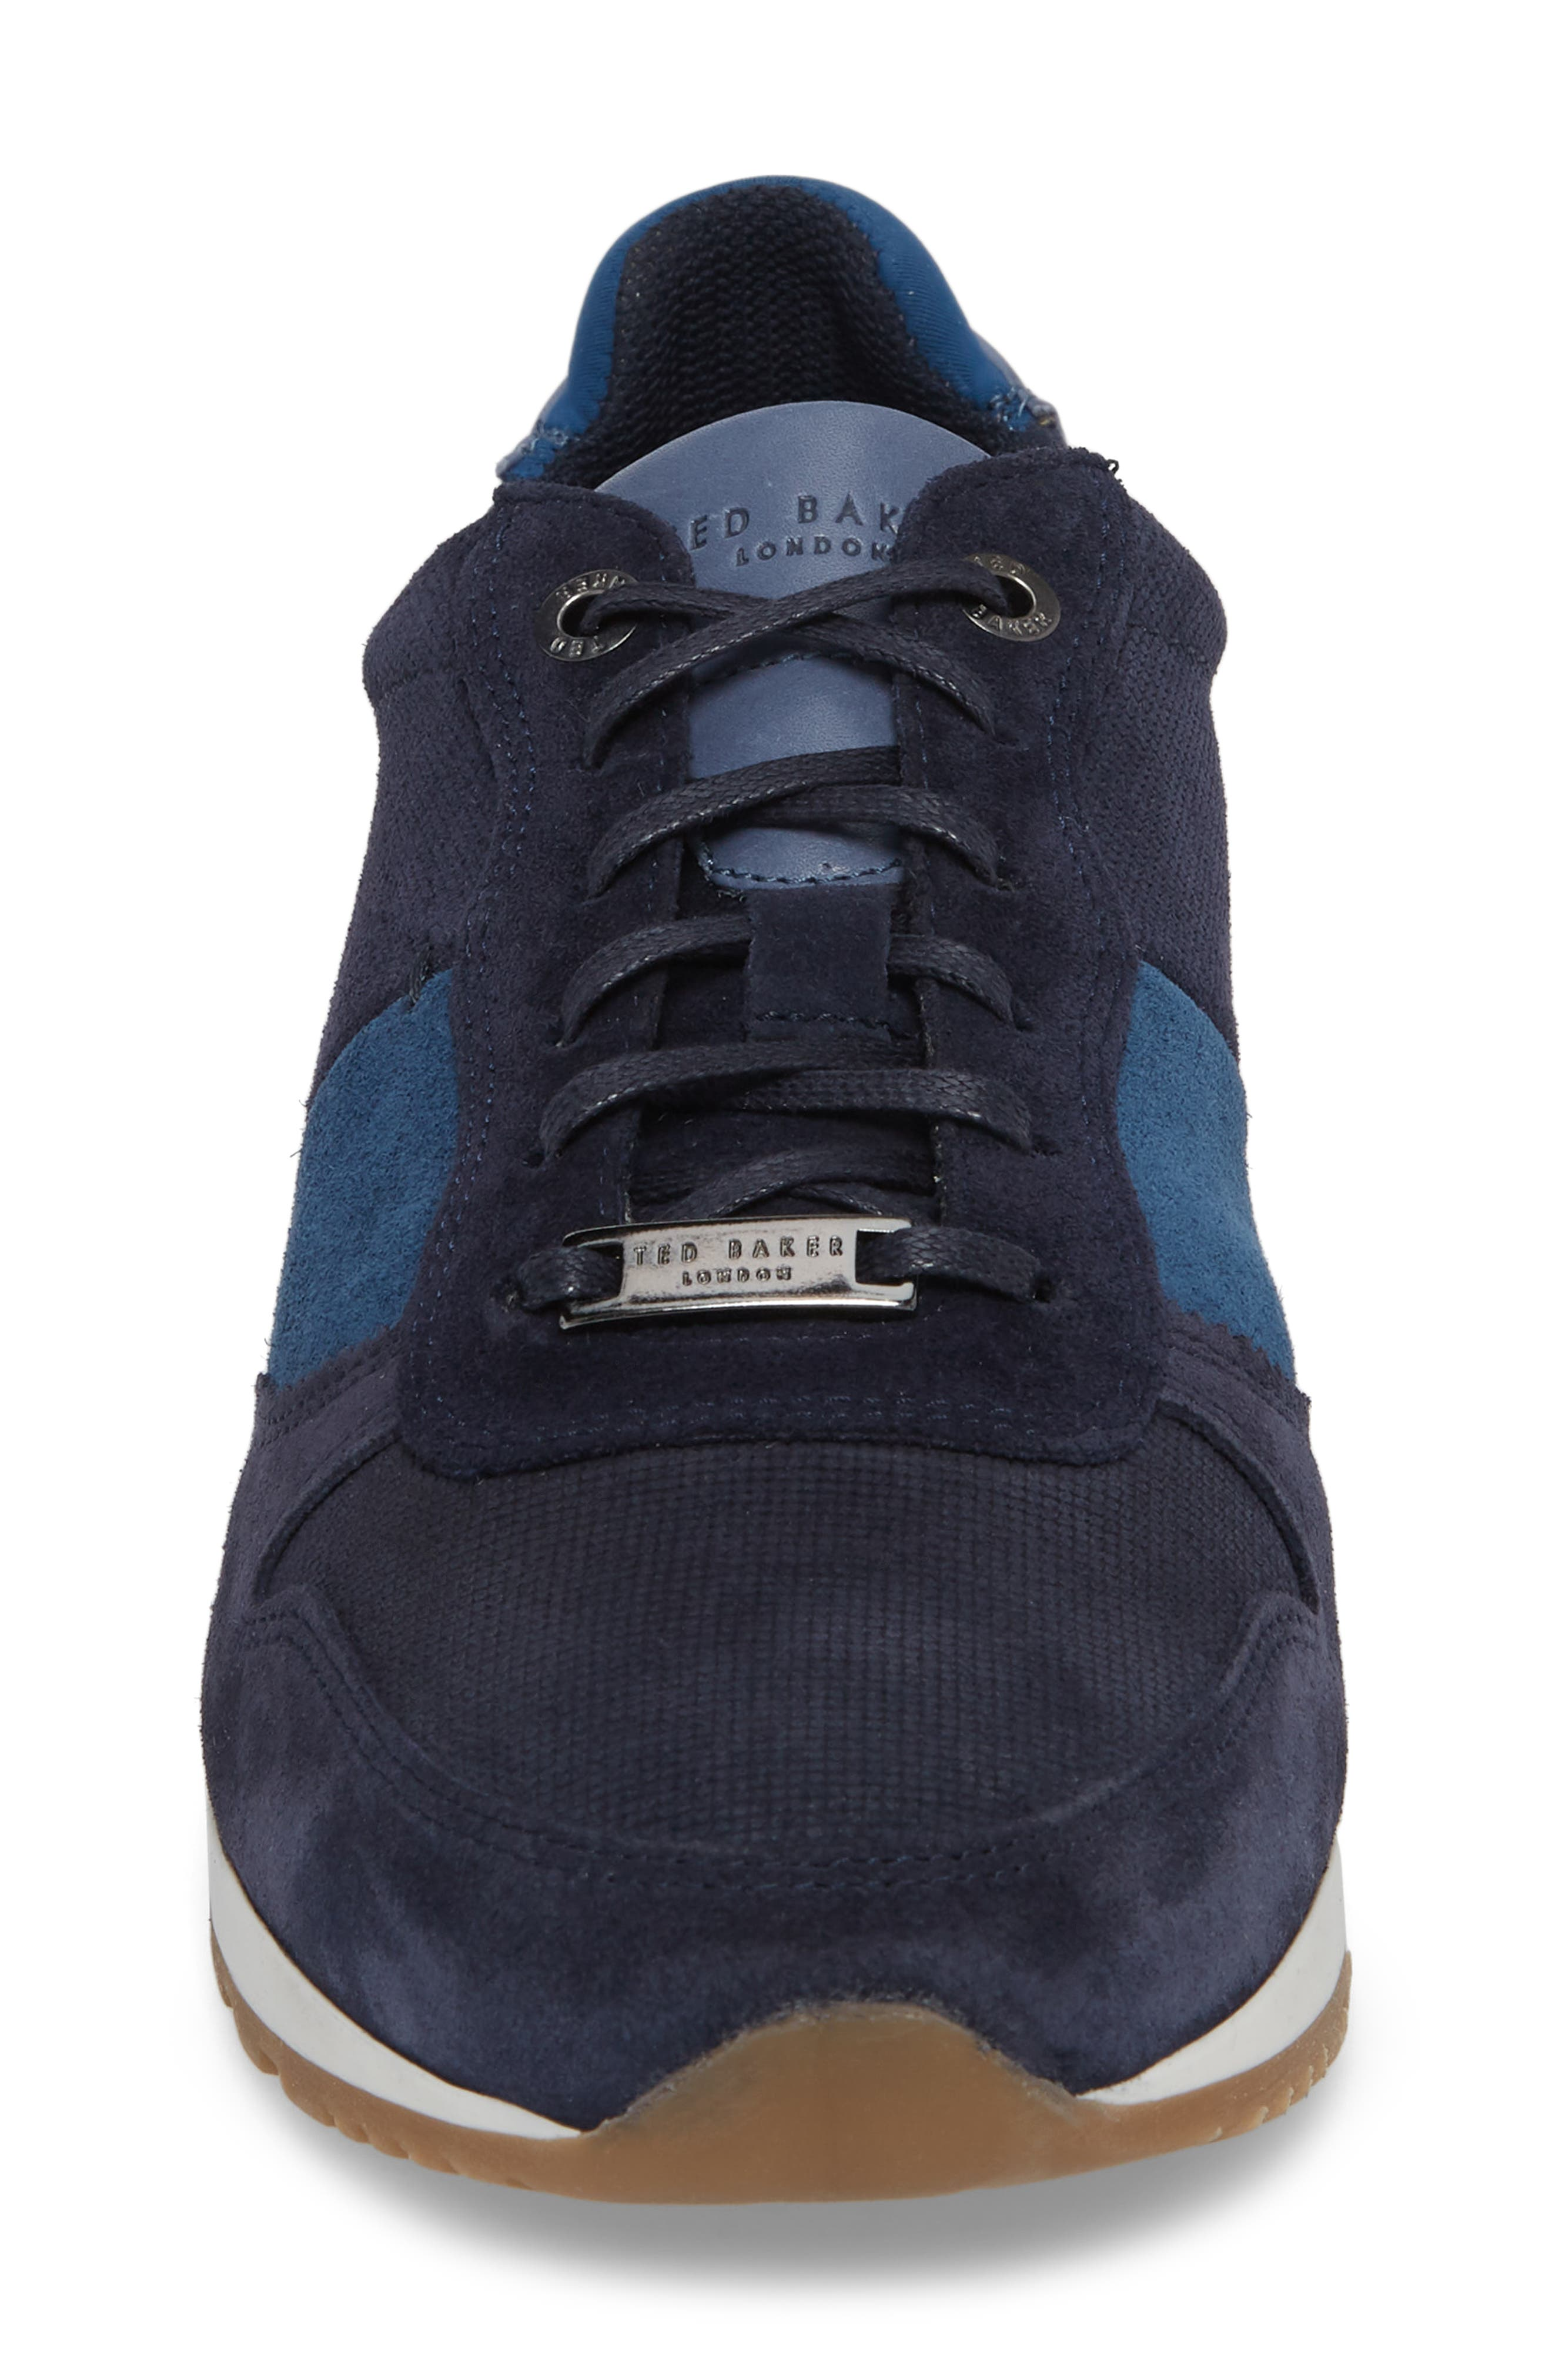 Shindls Low Top Sneaker,                             Alternate thumbnail 4, color,                             BLUE LEATHER/ SUEDE